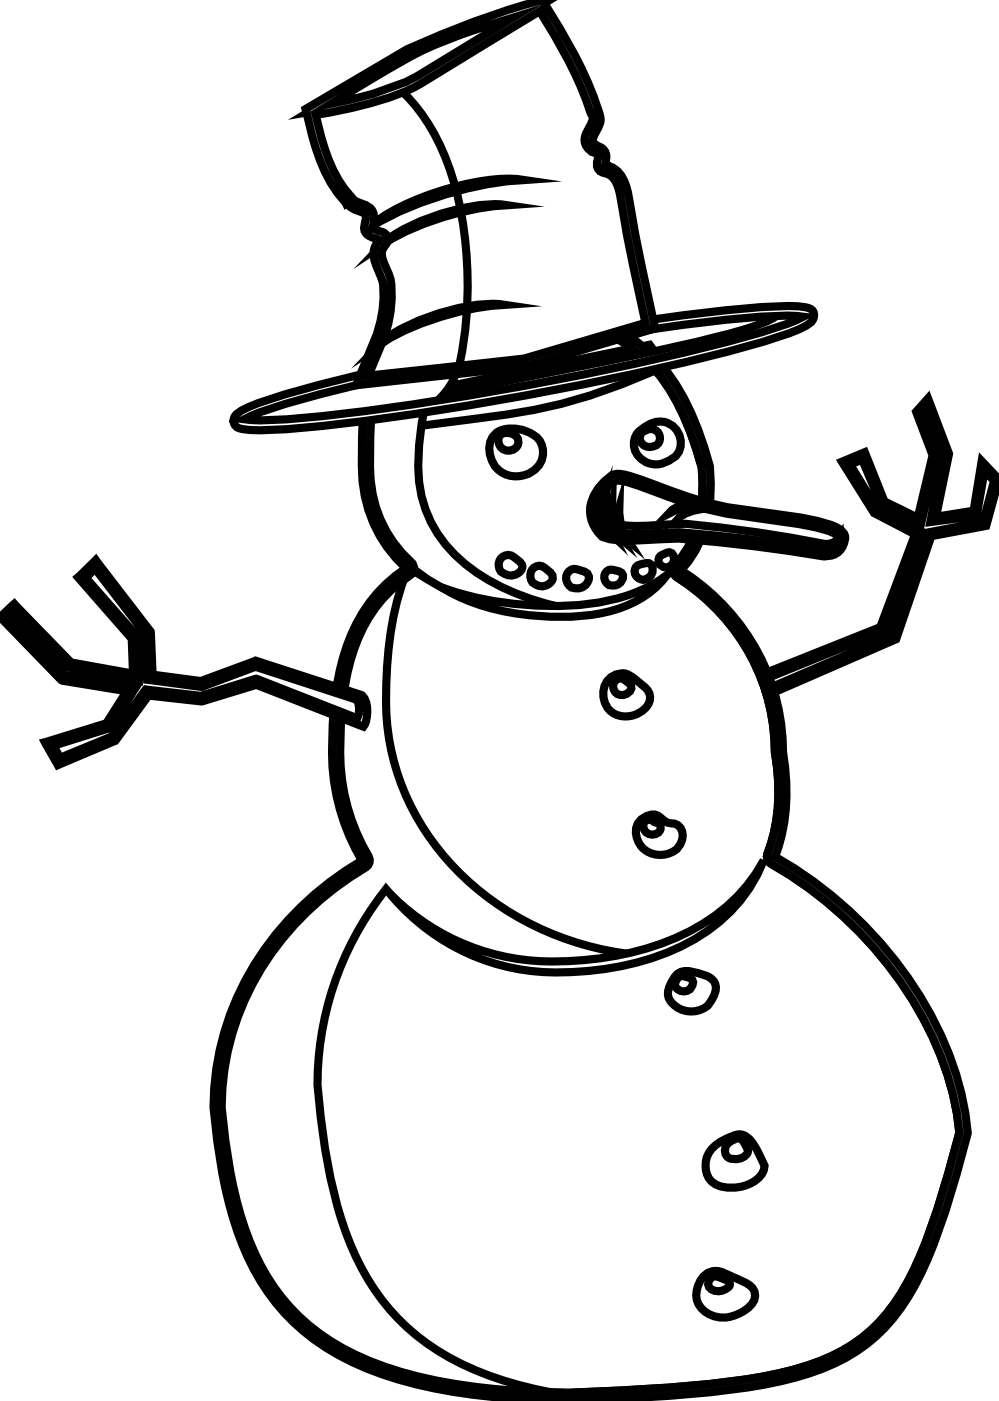 Snowman black and white snowman black and white christmas t clipart.